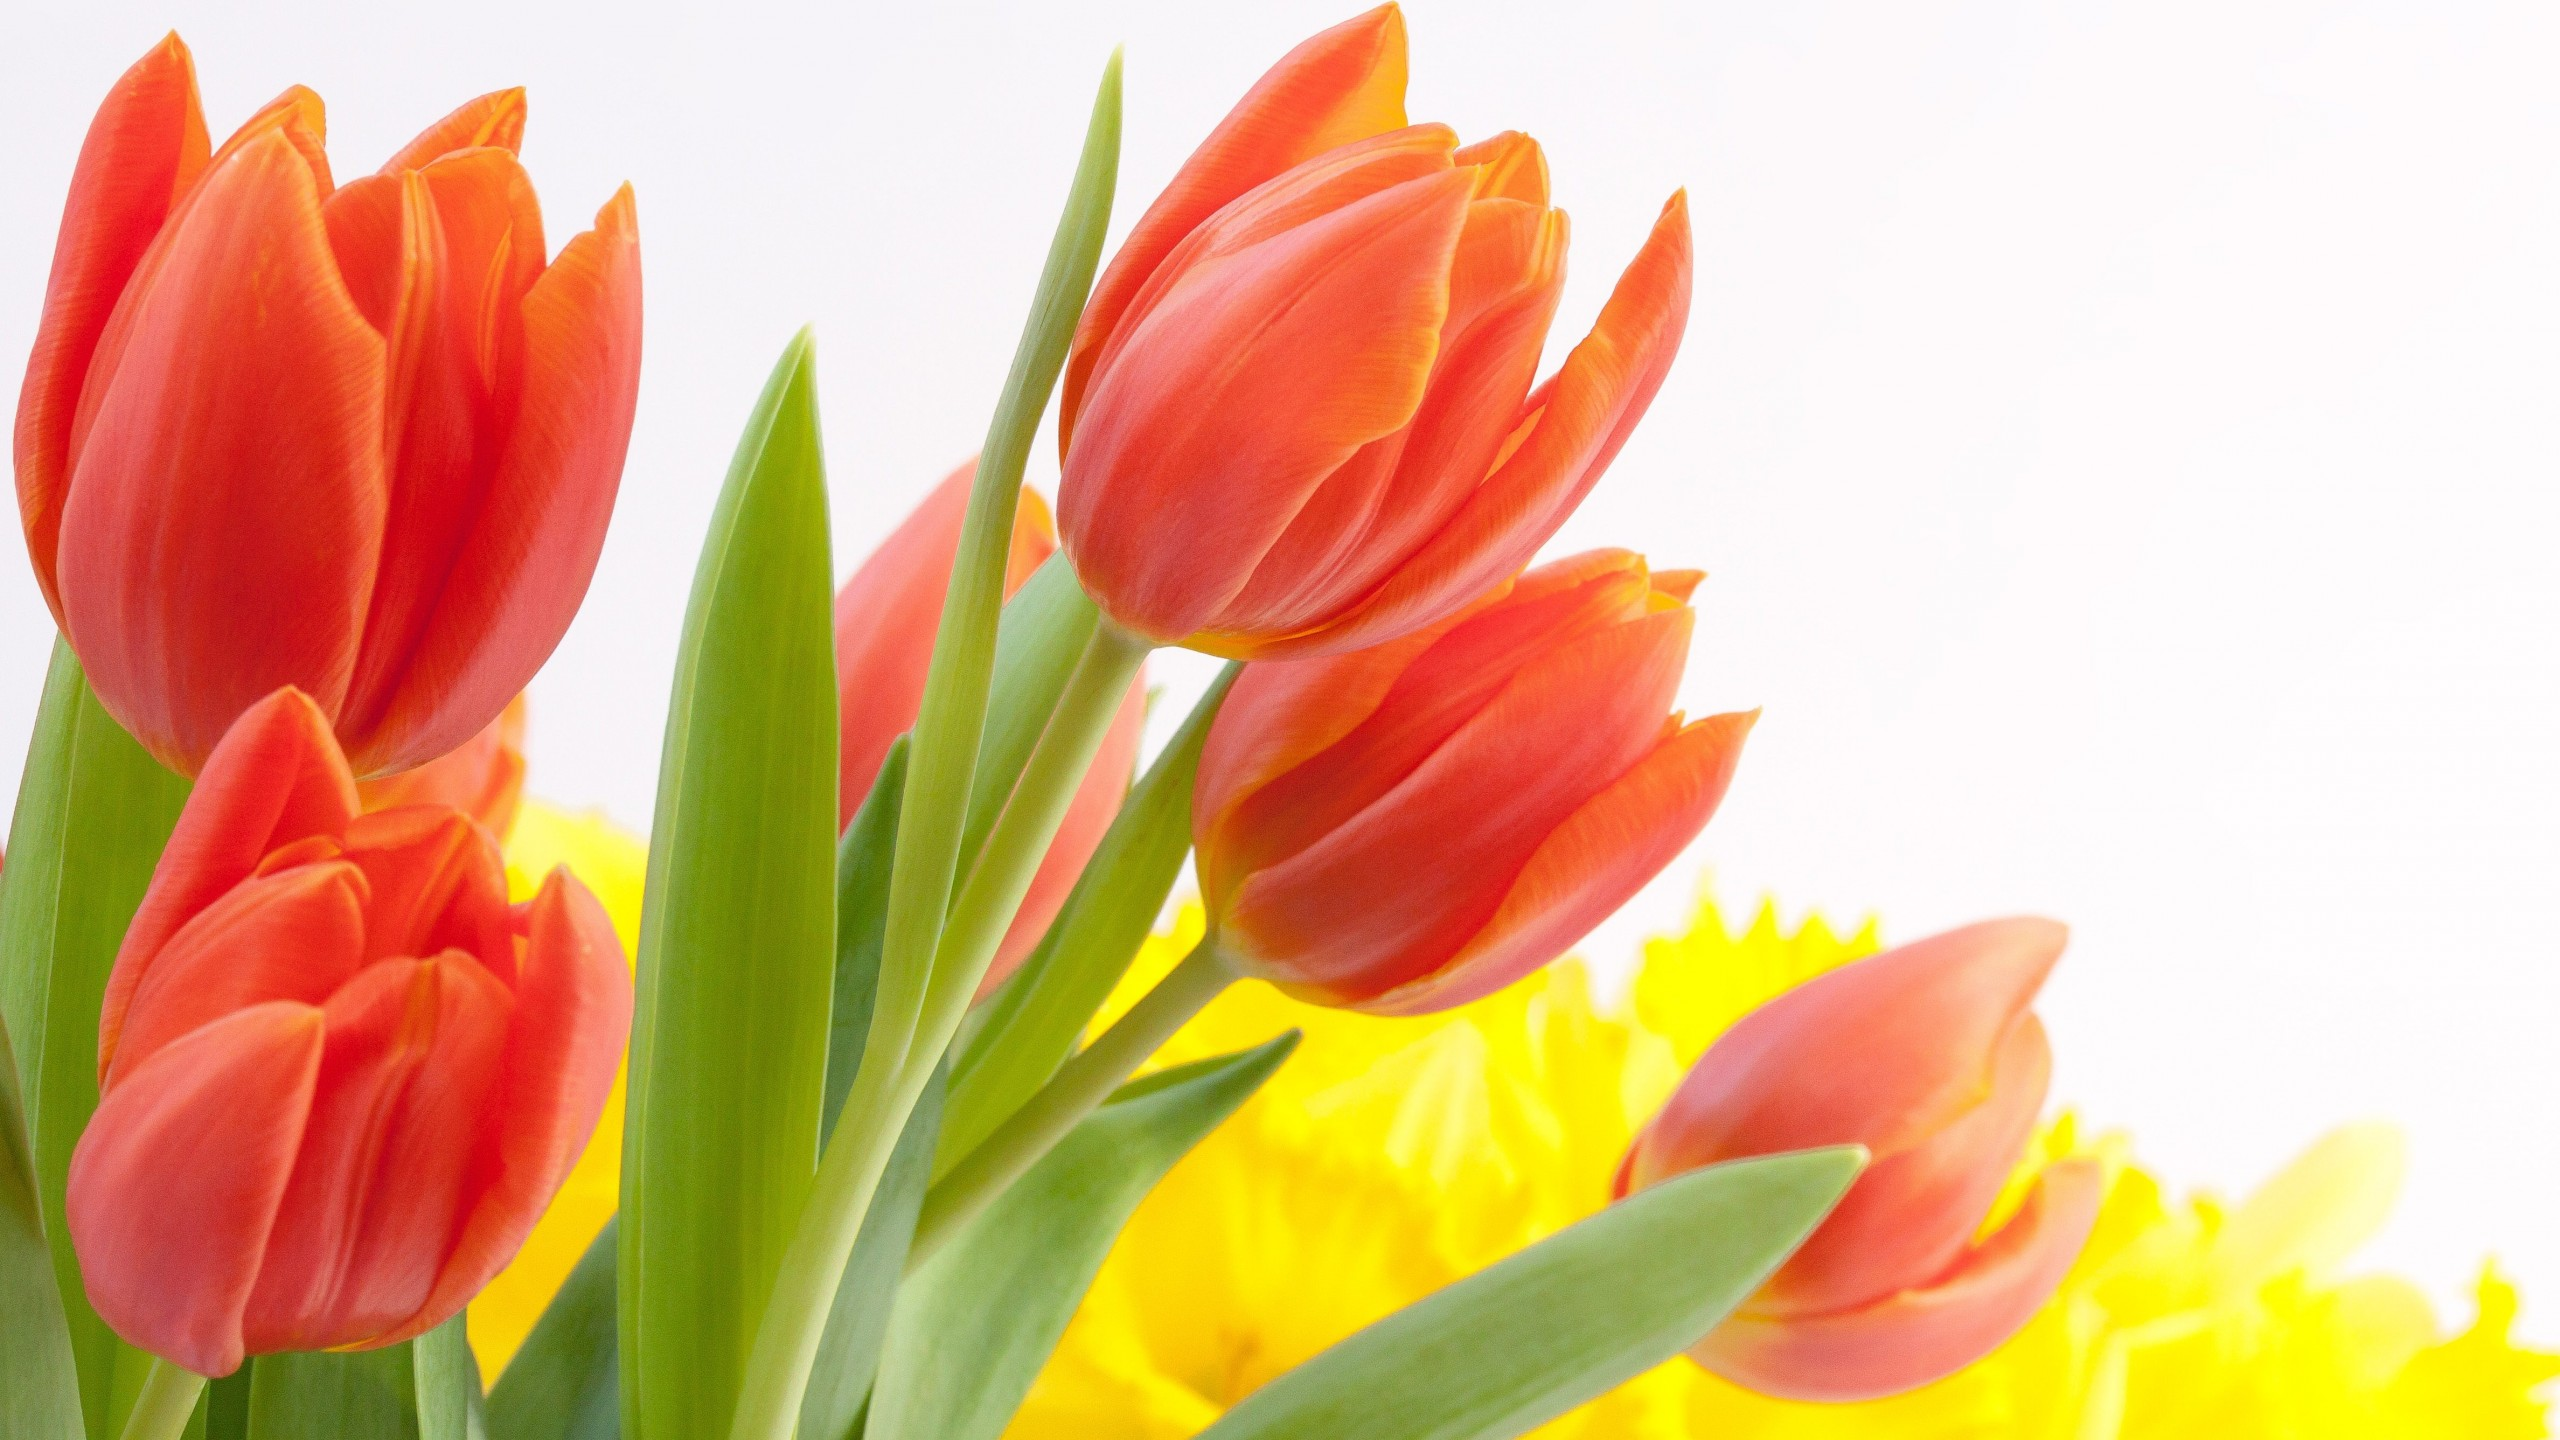 Tulips Flowers Wallpapers Posted By Samantha Johnson